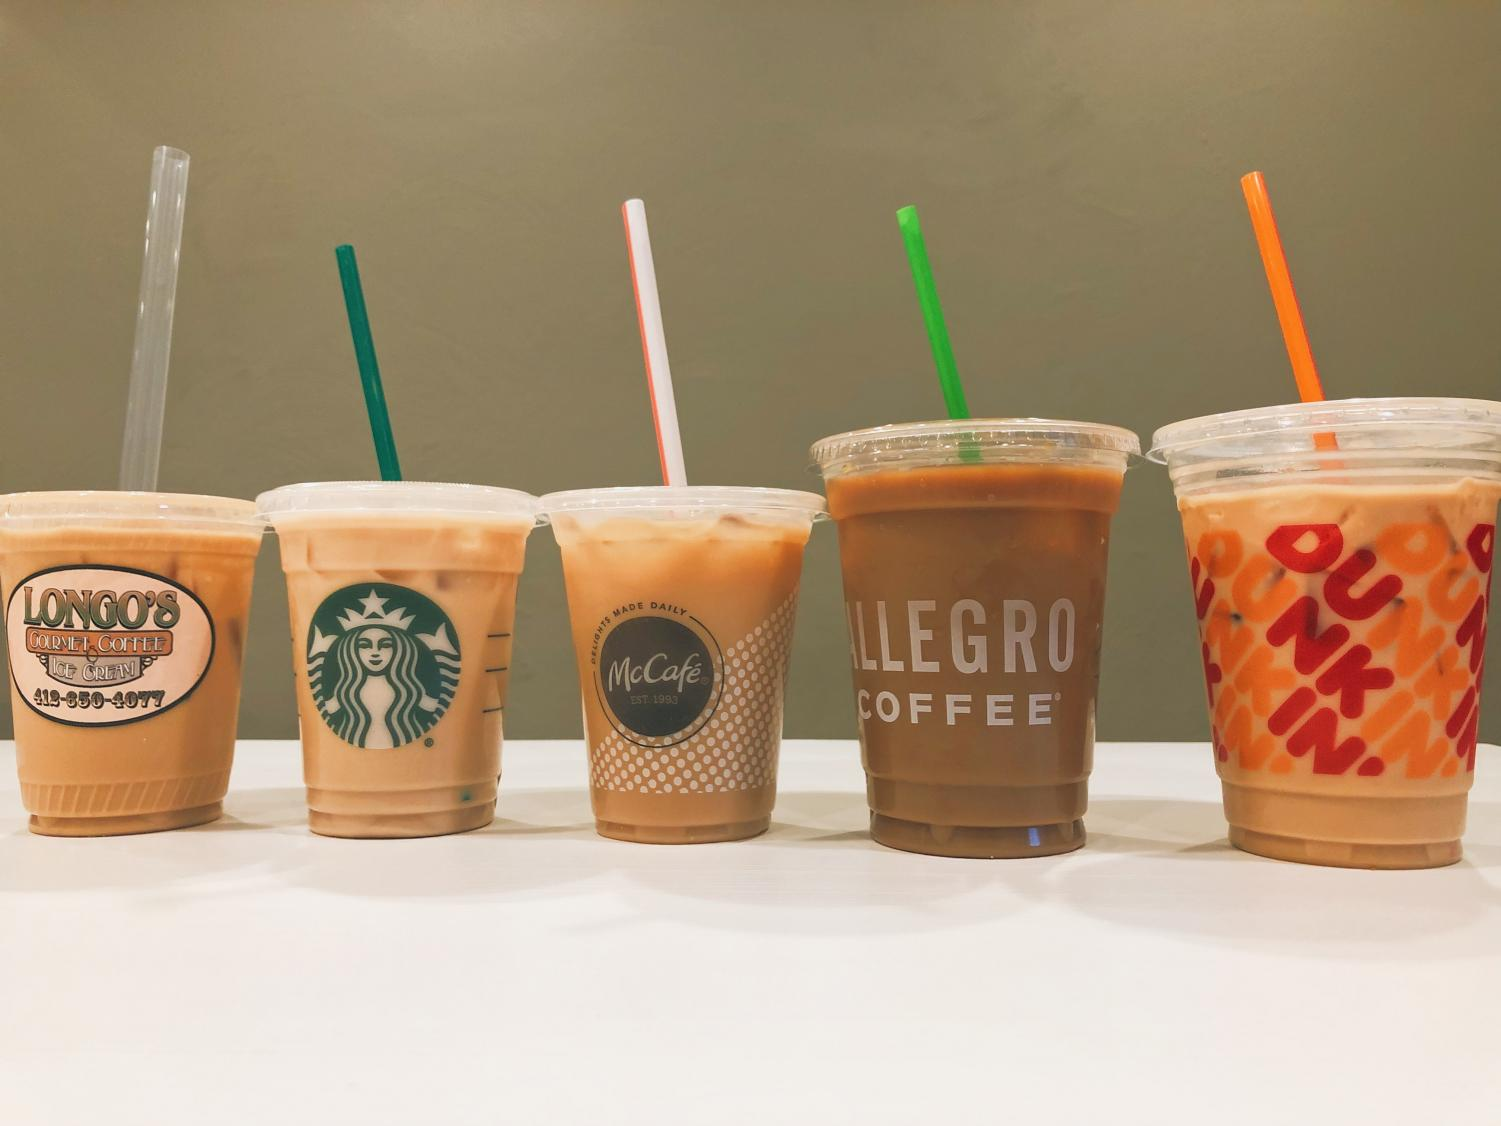 Iced coffee is always in season, so Uproar staffer Carly DeArmit went on a search for the best one in Wexford.